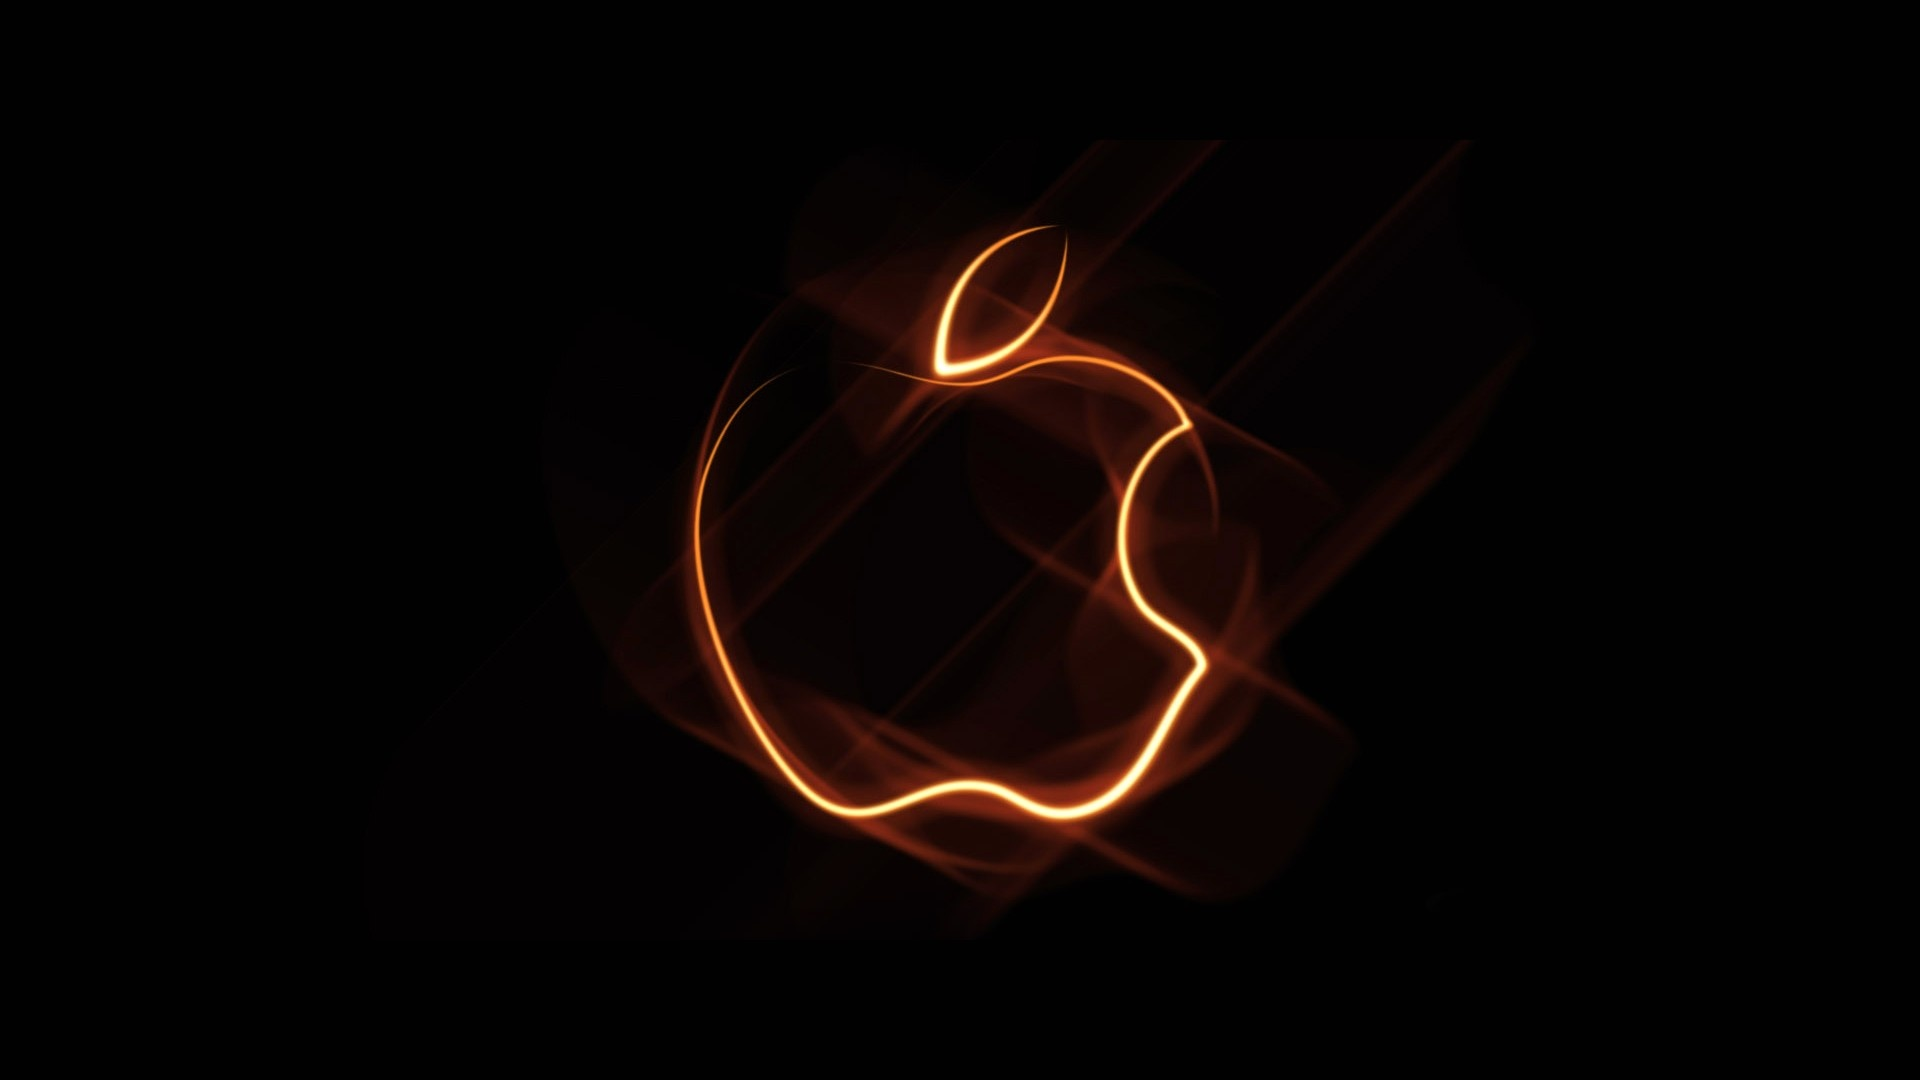 Apple Gadget Light